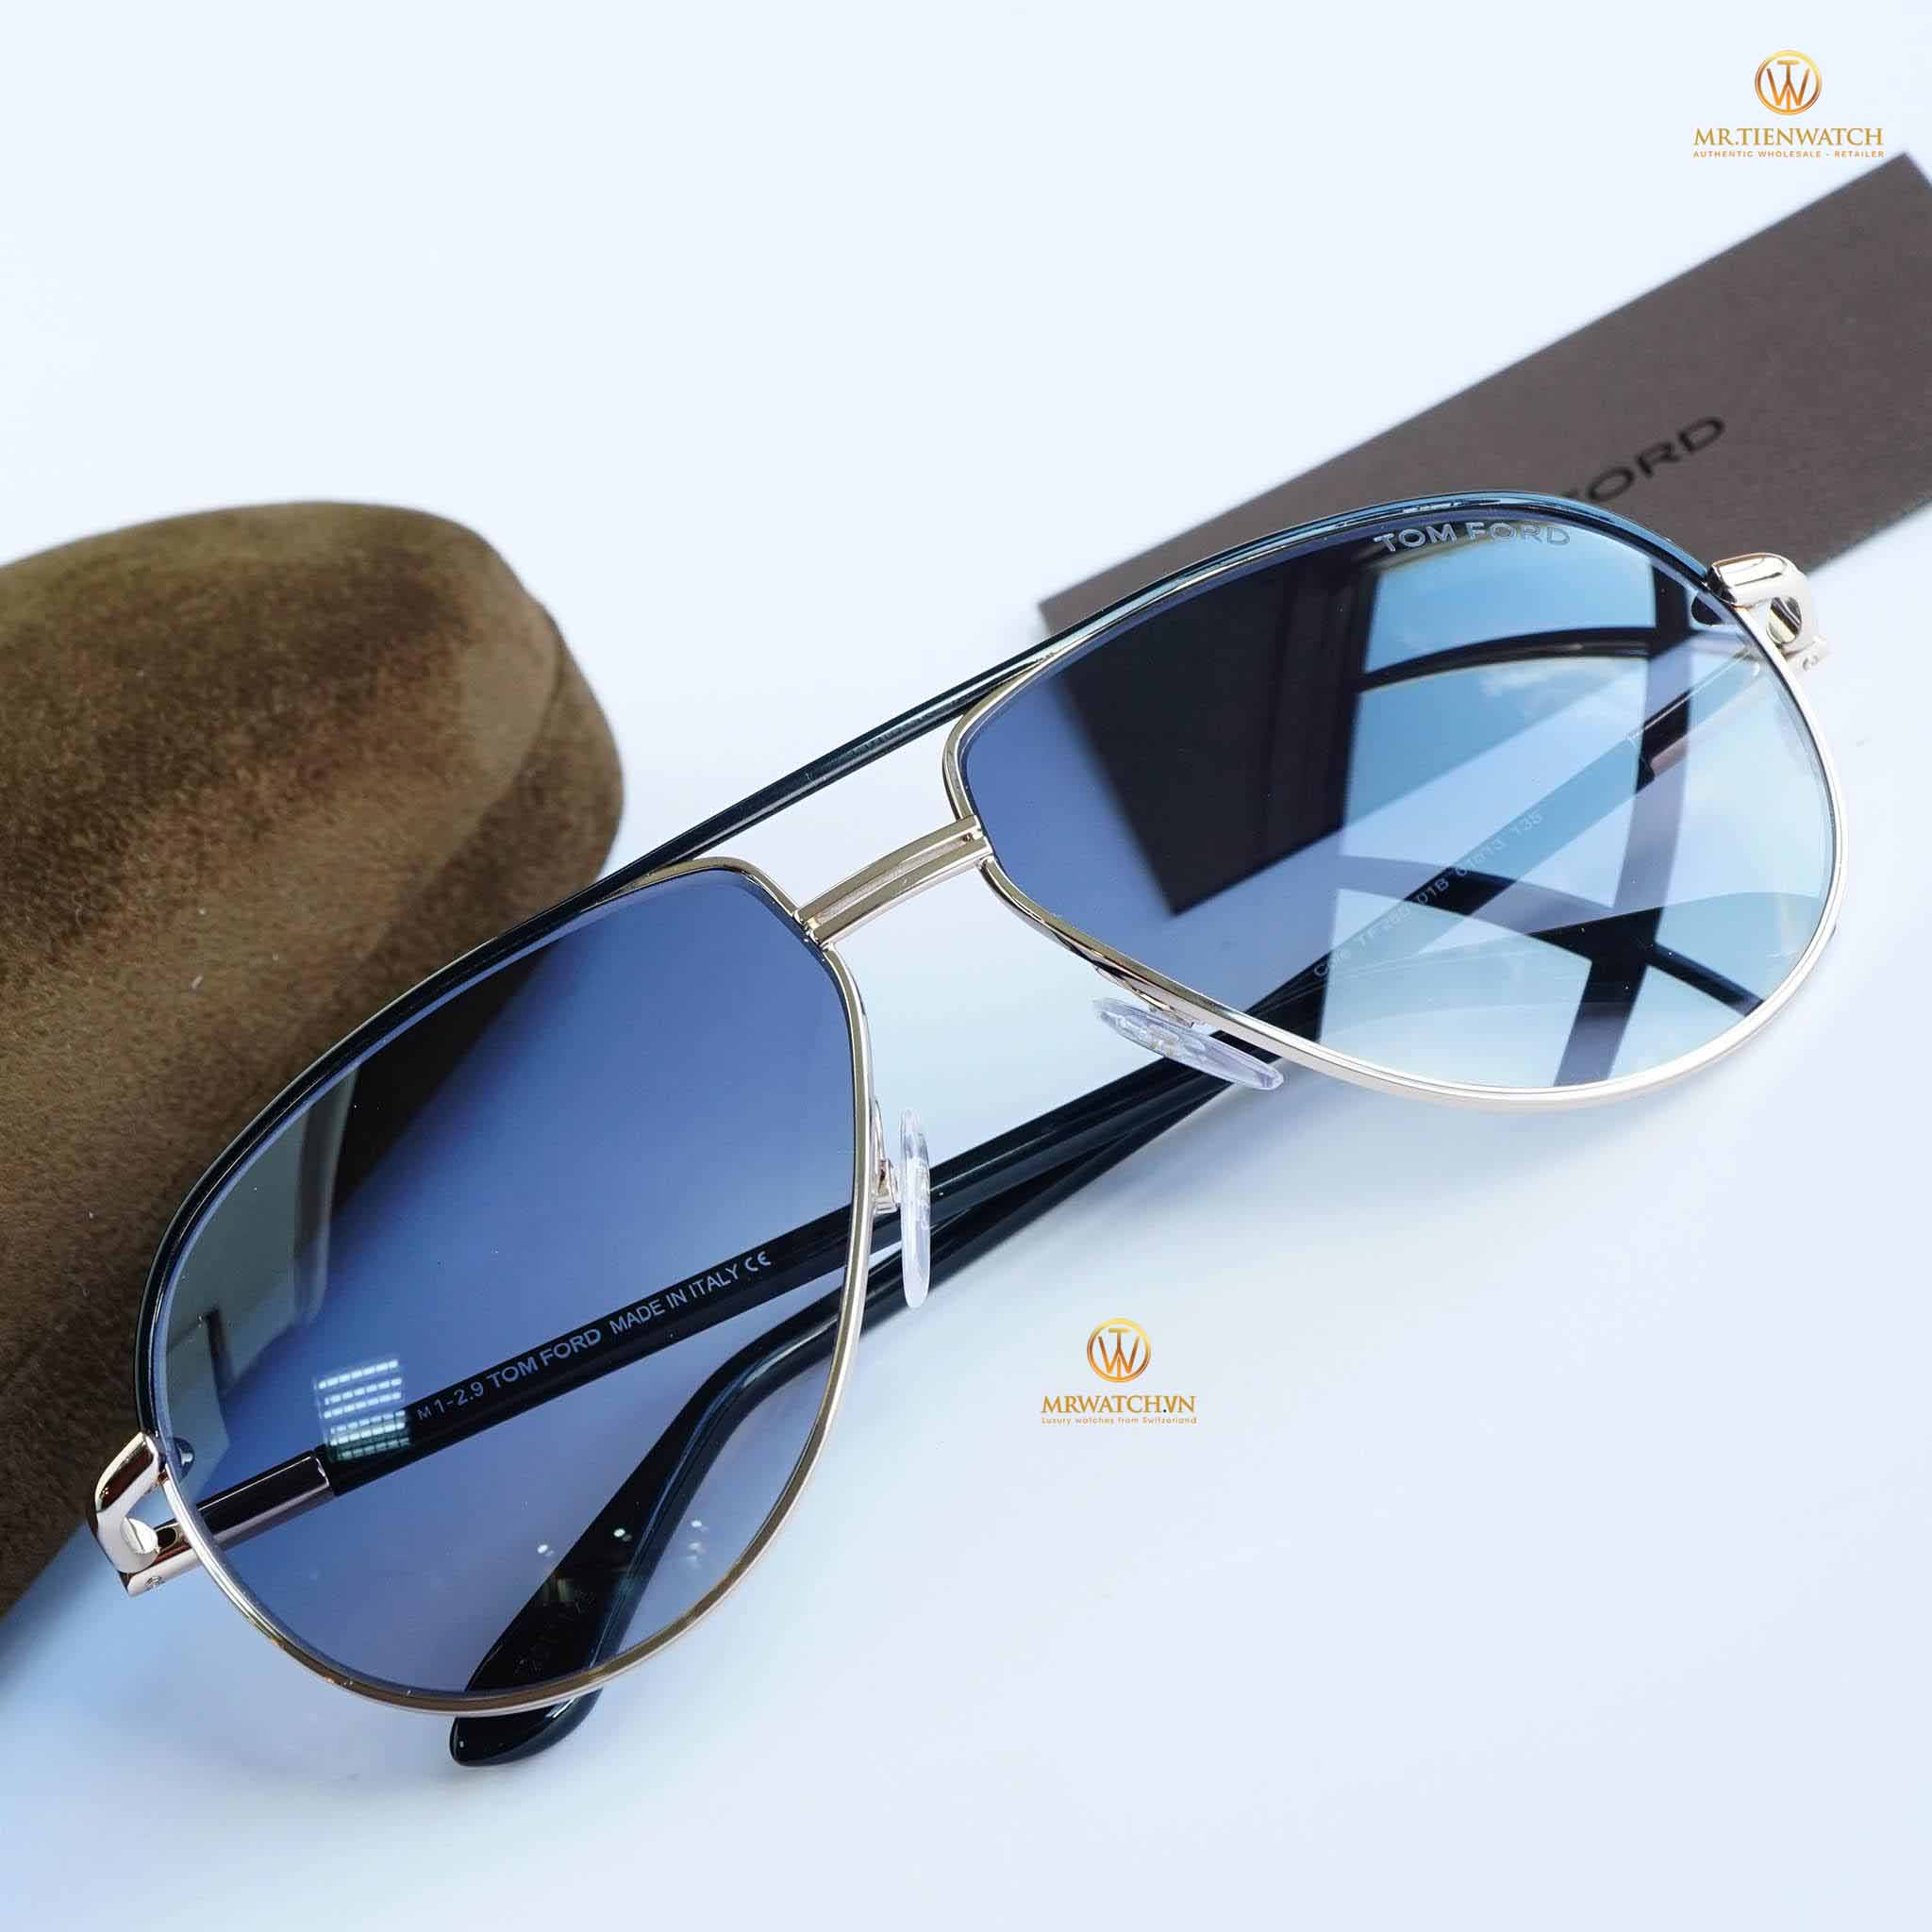 Tom Ford 2016 Aviator 0285 black gold light blue - TF FT 0285 01B Kim loại Metal Xanh nhạt light blue